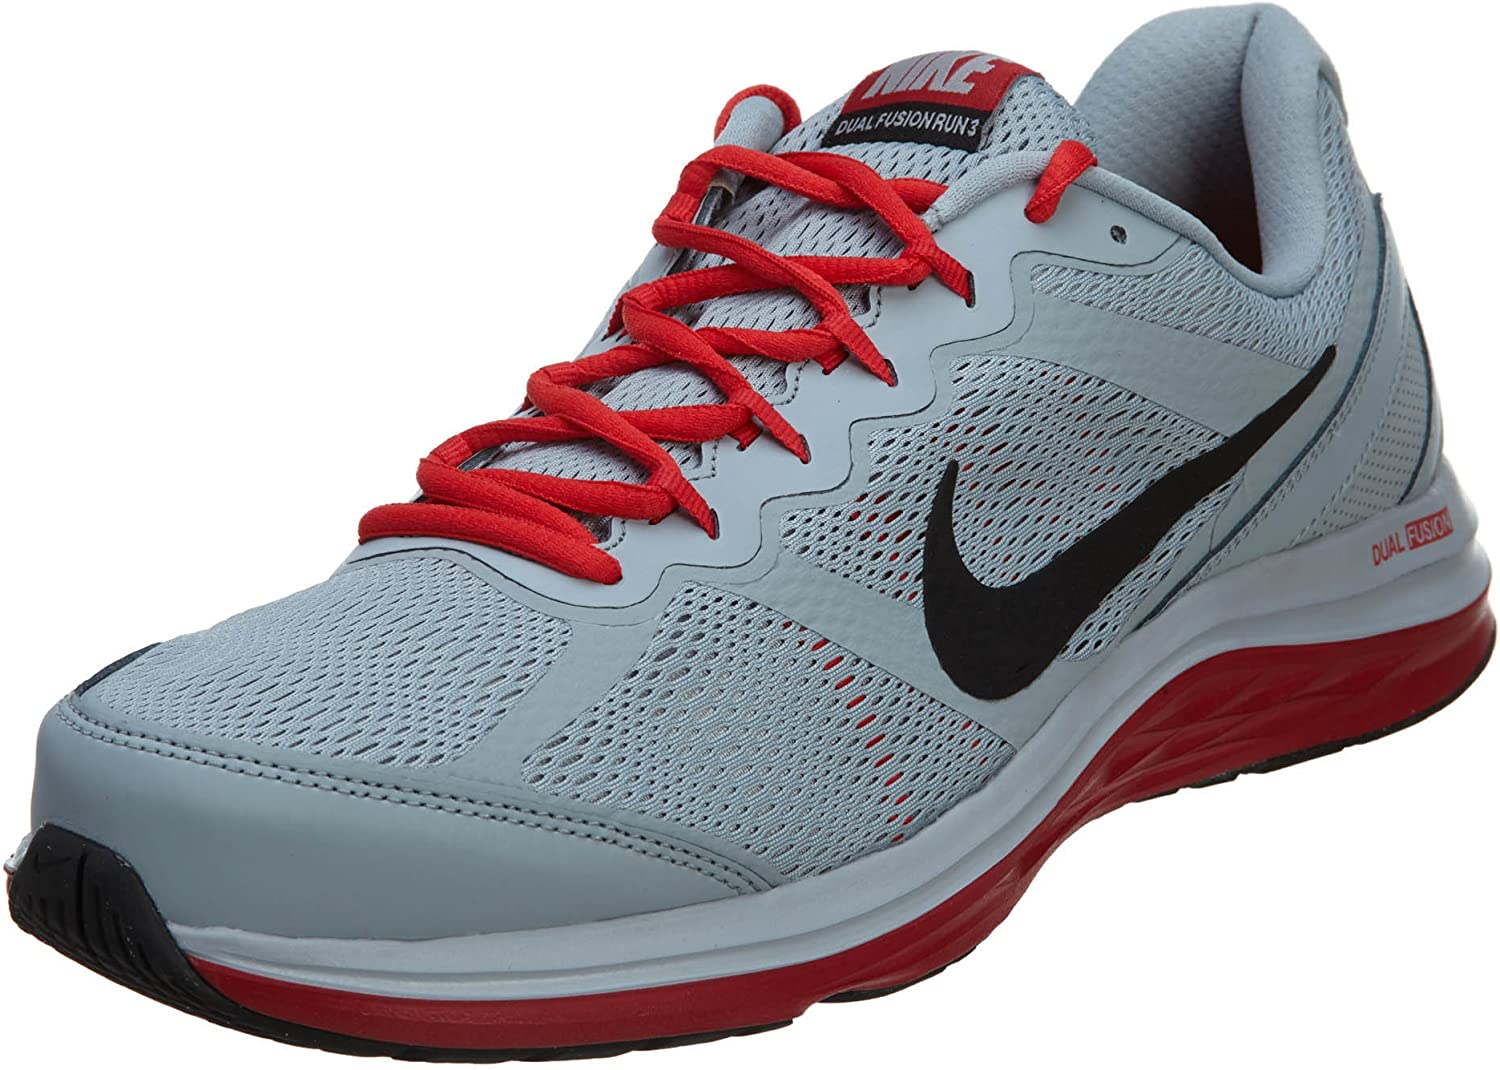 Rancio Proverbio Metro  Amazon.com: Nike Dual Fusion Run 3 Mens estilo: 653619 – 008 Tamaño: 10,5:  Shoes